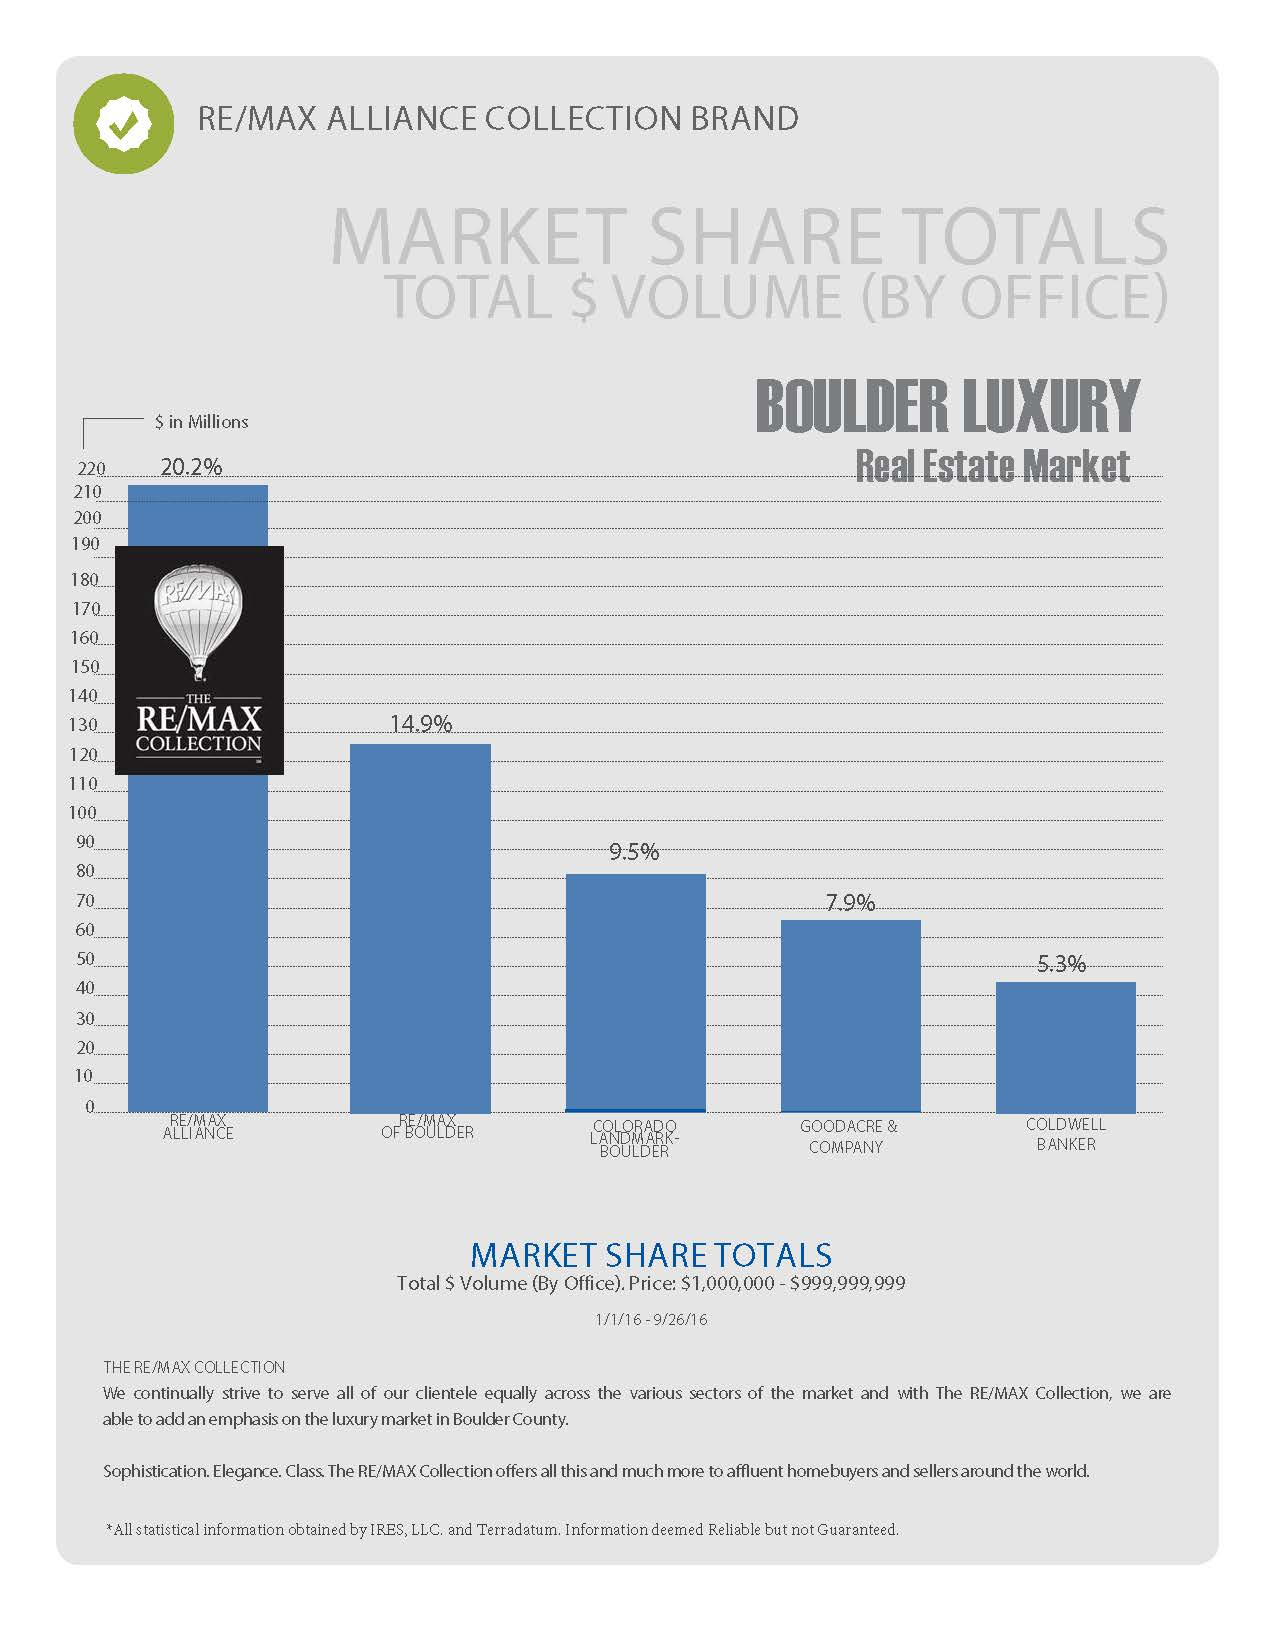 REMAX Alliance Top Agency in Boulder